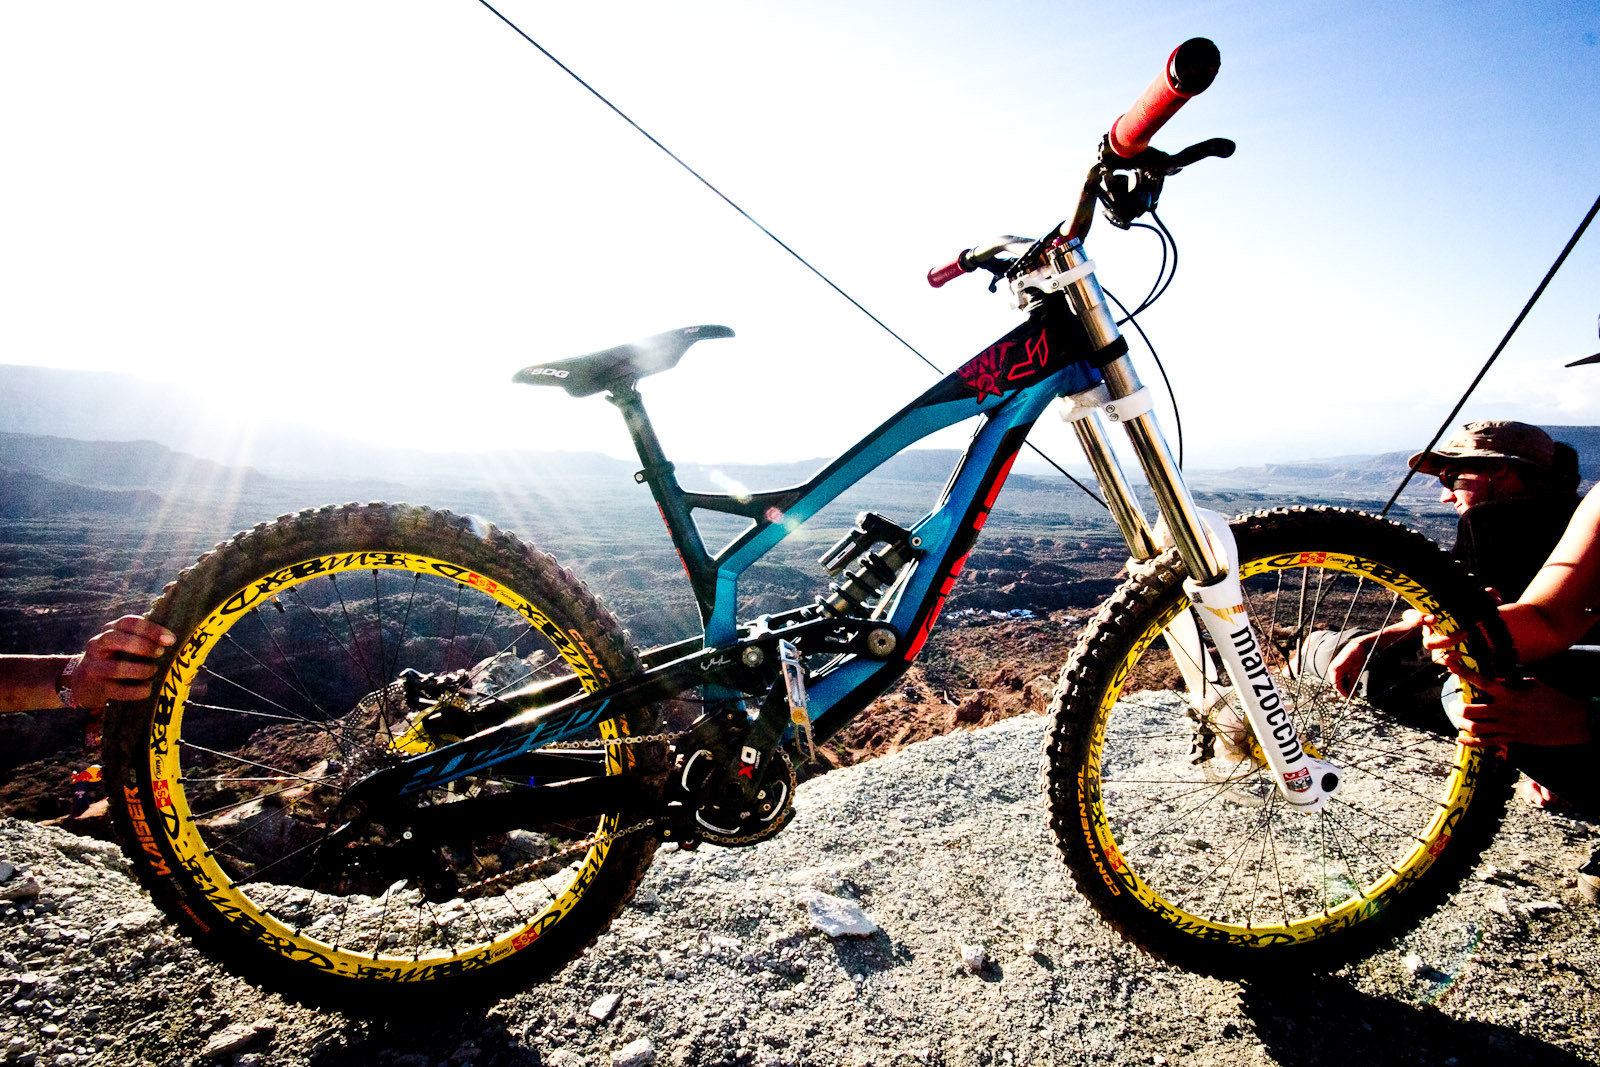 Rampage Pro Bike: Andreu Lacondeguy's YT Tues 2.0 - Rampage Pro Bike: Andreu Lacondeguy's YT Tues 2.0 - Mountain Biking Pictures - Vital MTB